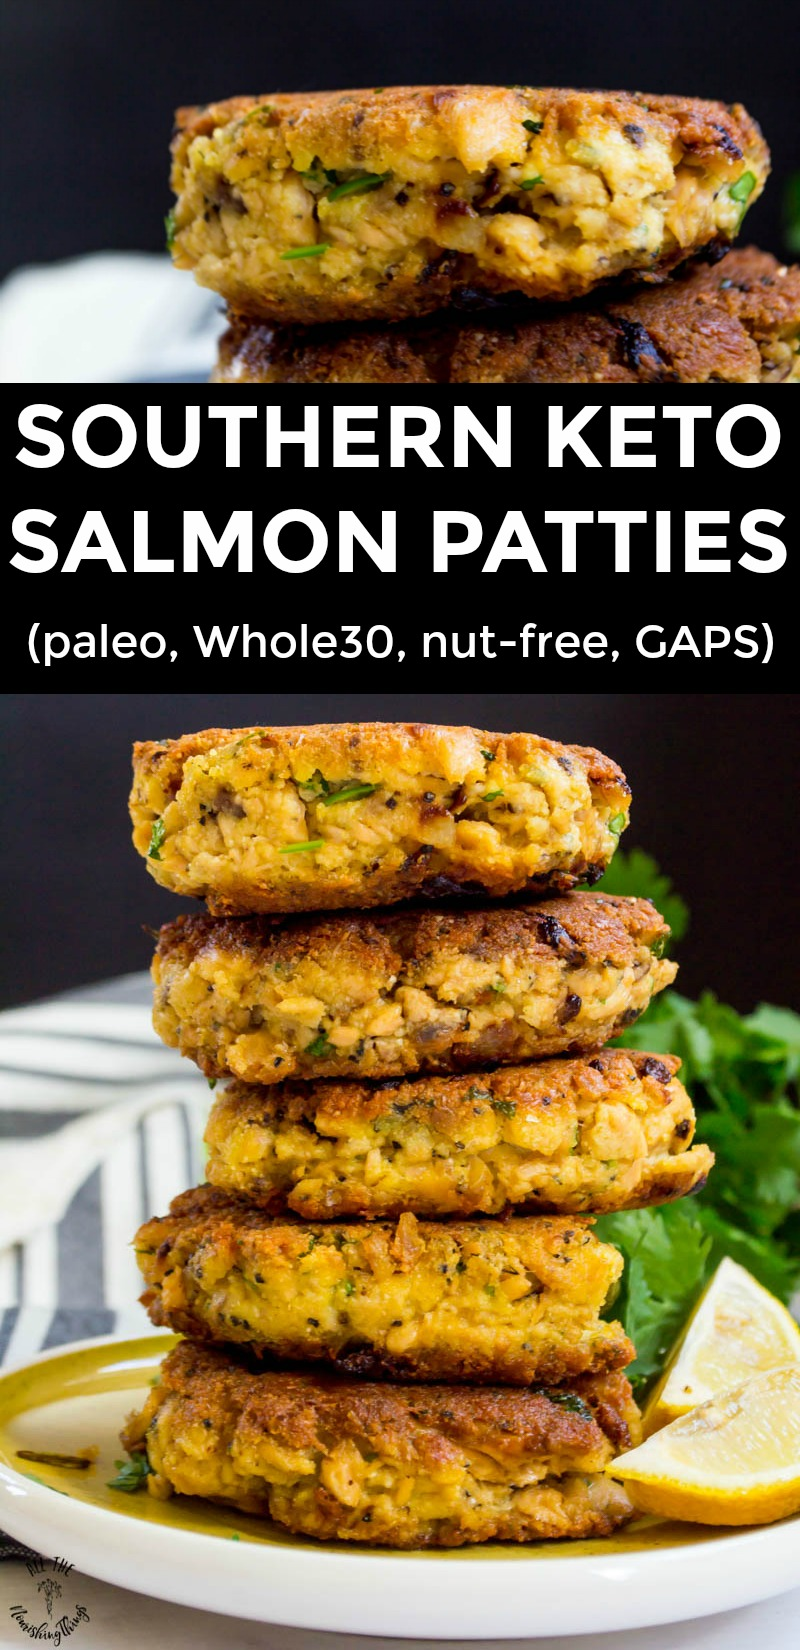 stack of 5 keto salmon patties with lemon wedges and a text overlay